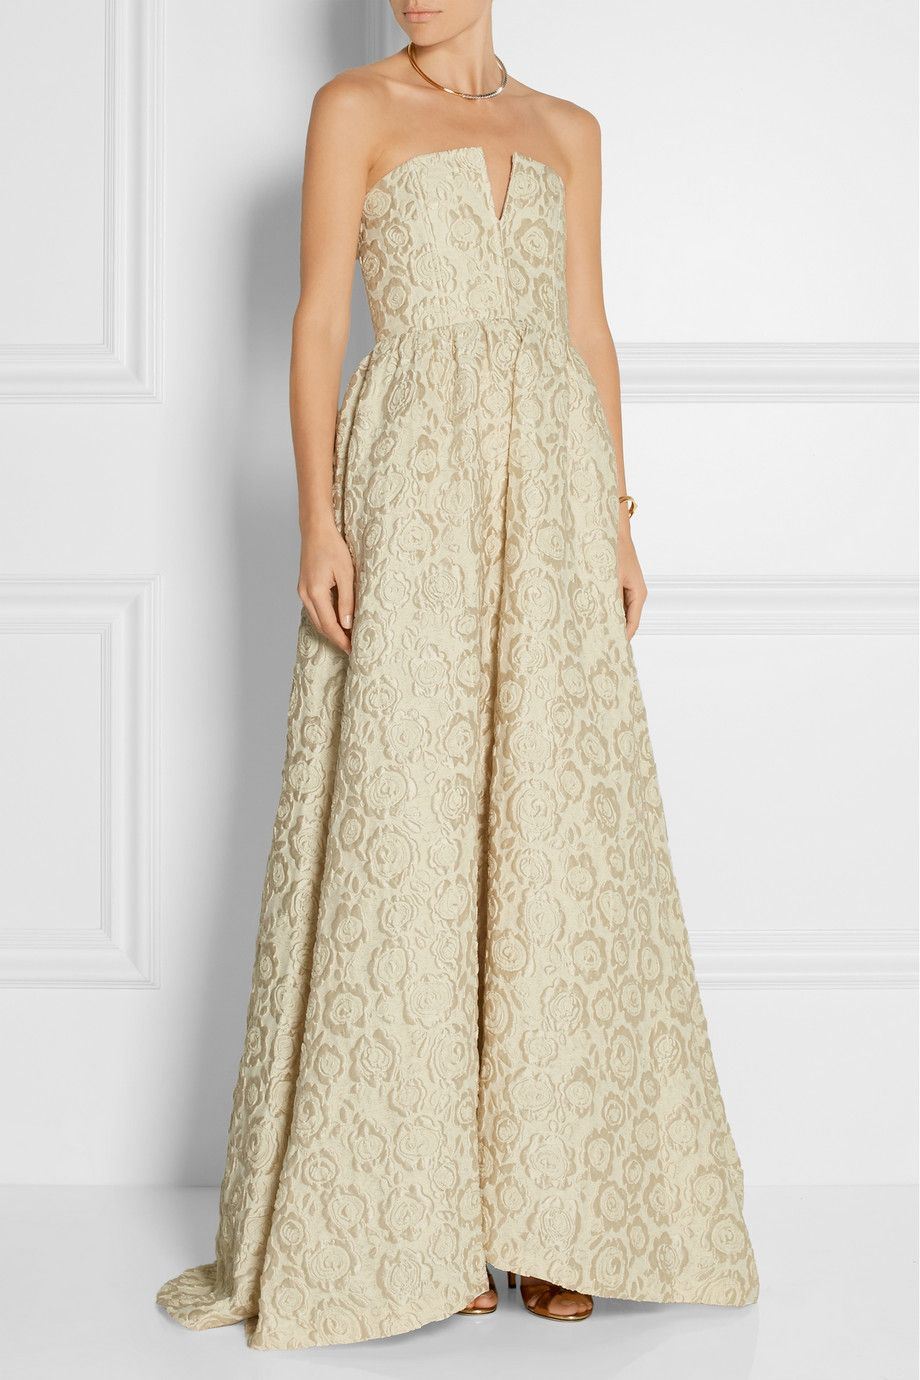 Alice + Olivia | Axmis jacquard gown | NET-A-PORTER.COM | My style ...